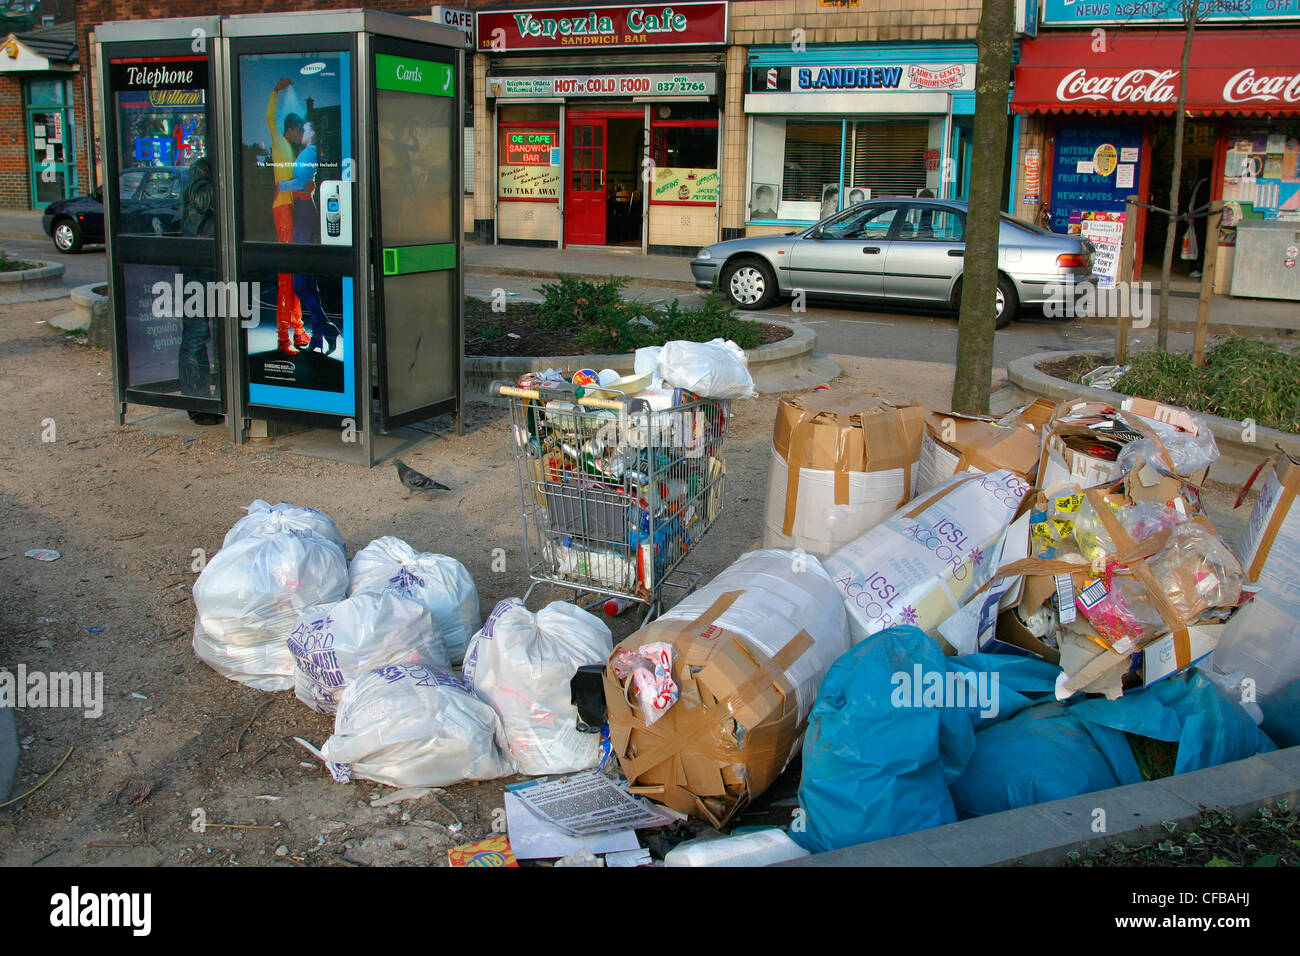 Rubbish on the streets, London, UK. - Stock Image